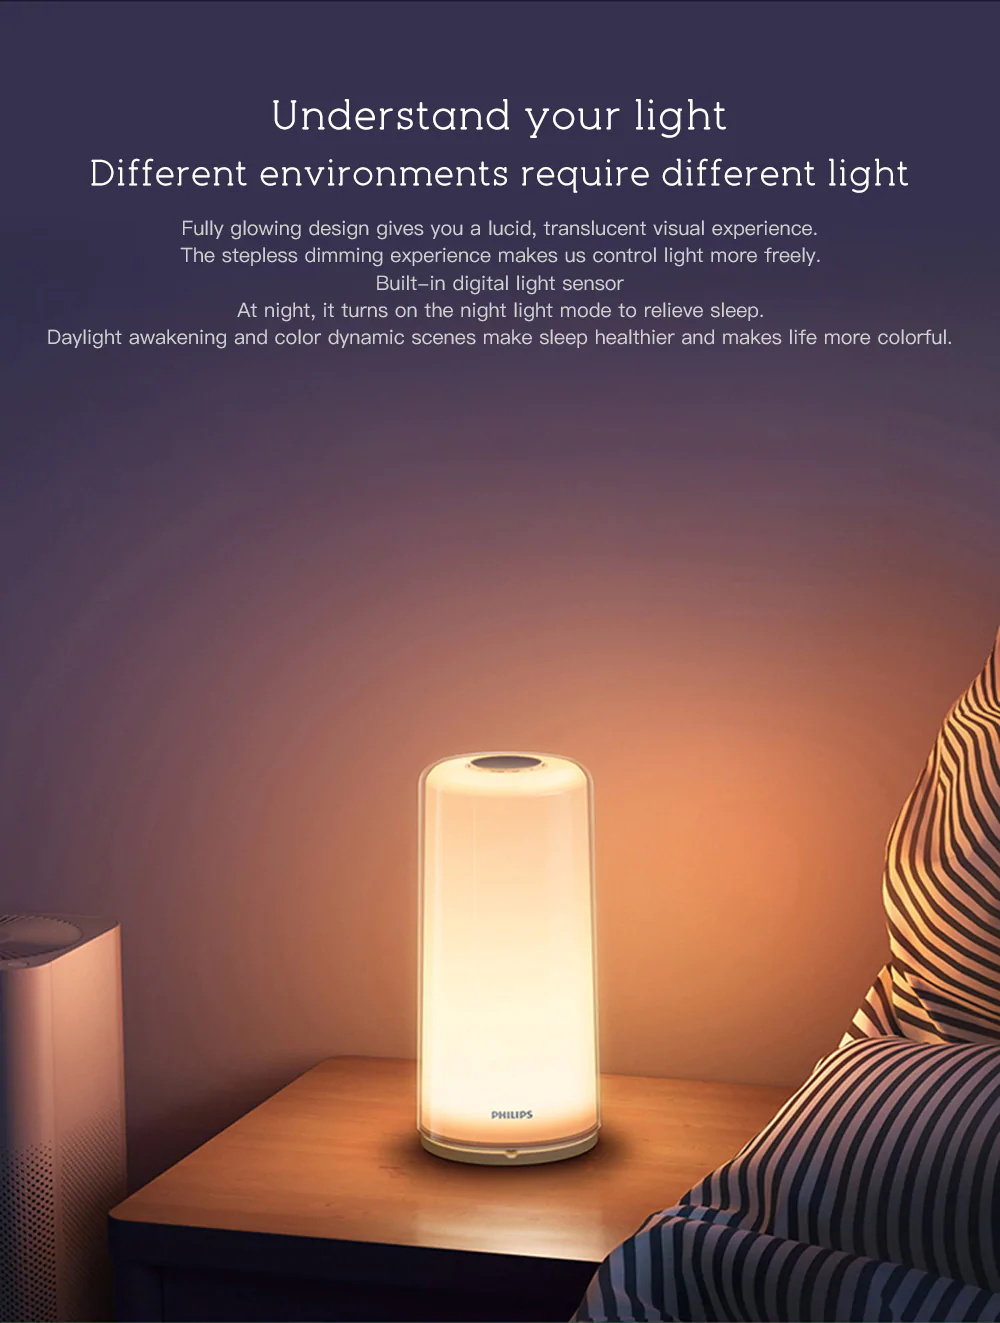 xiaomi philips night lamp